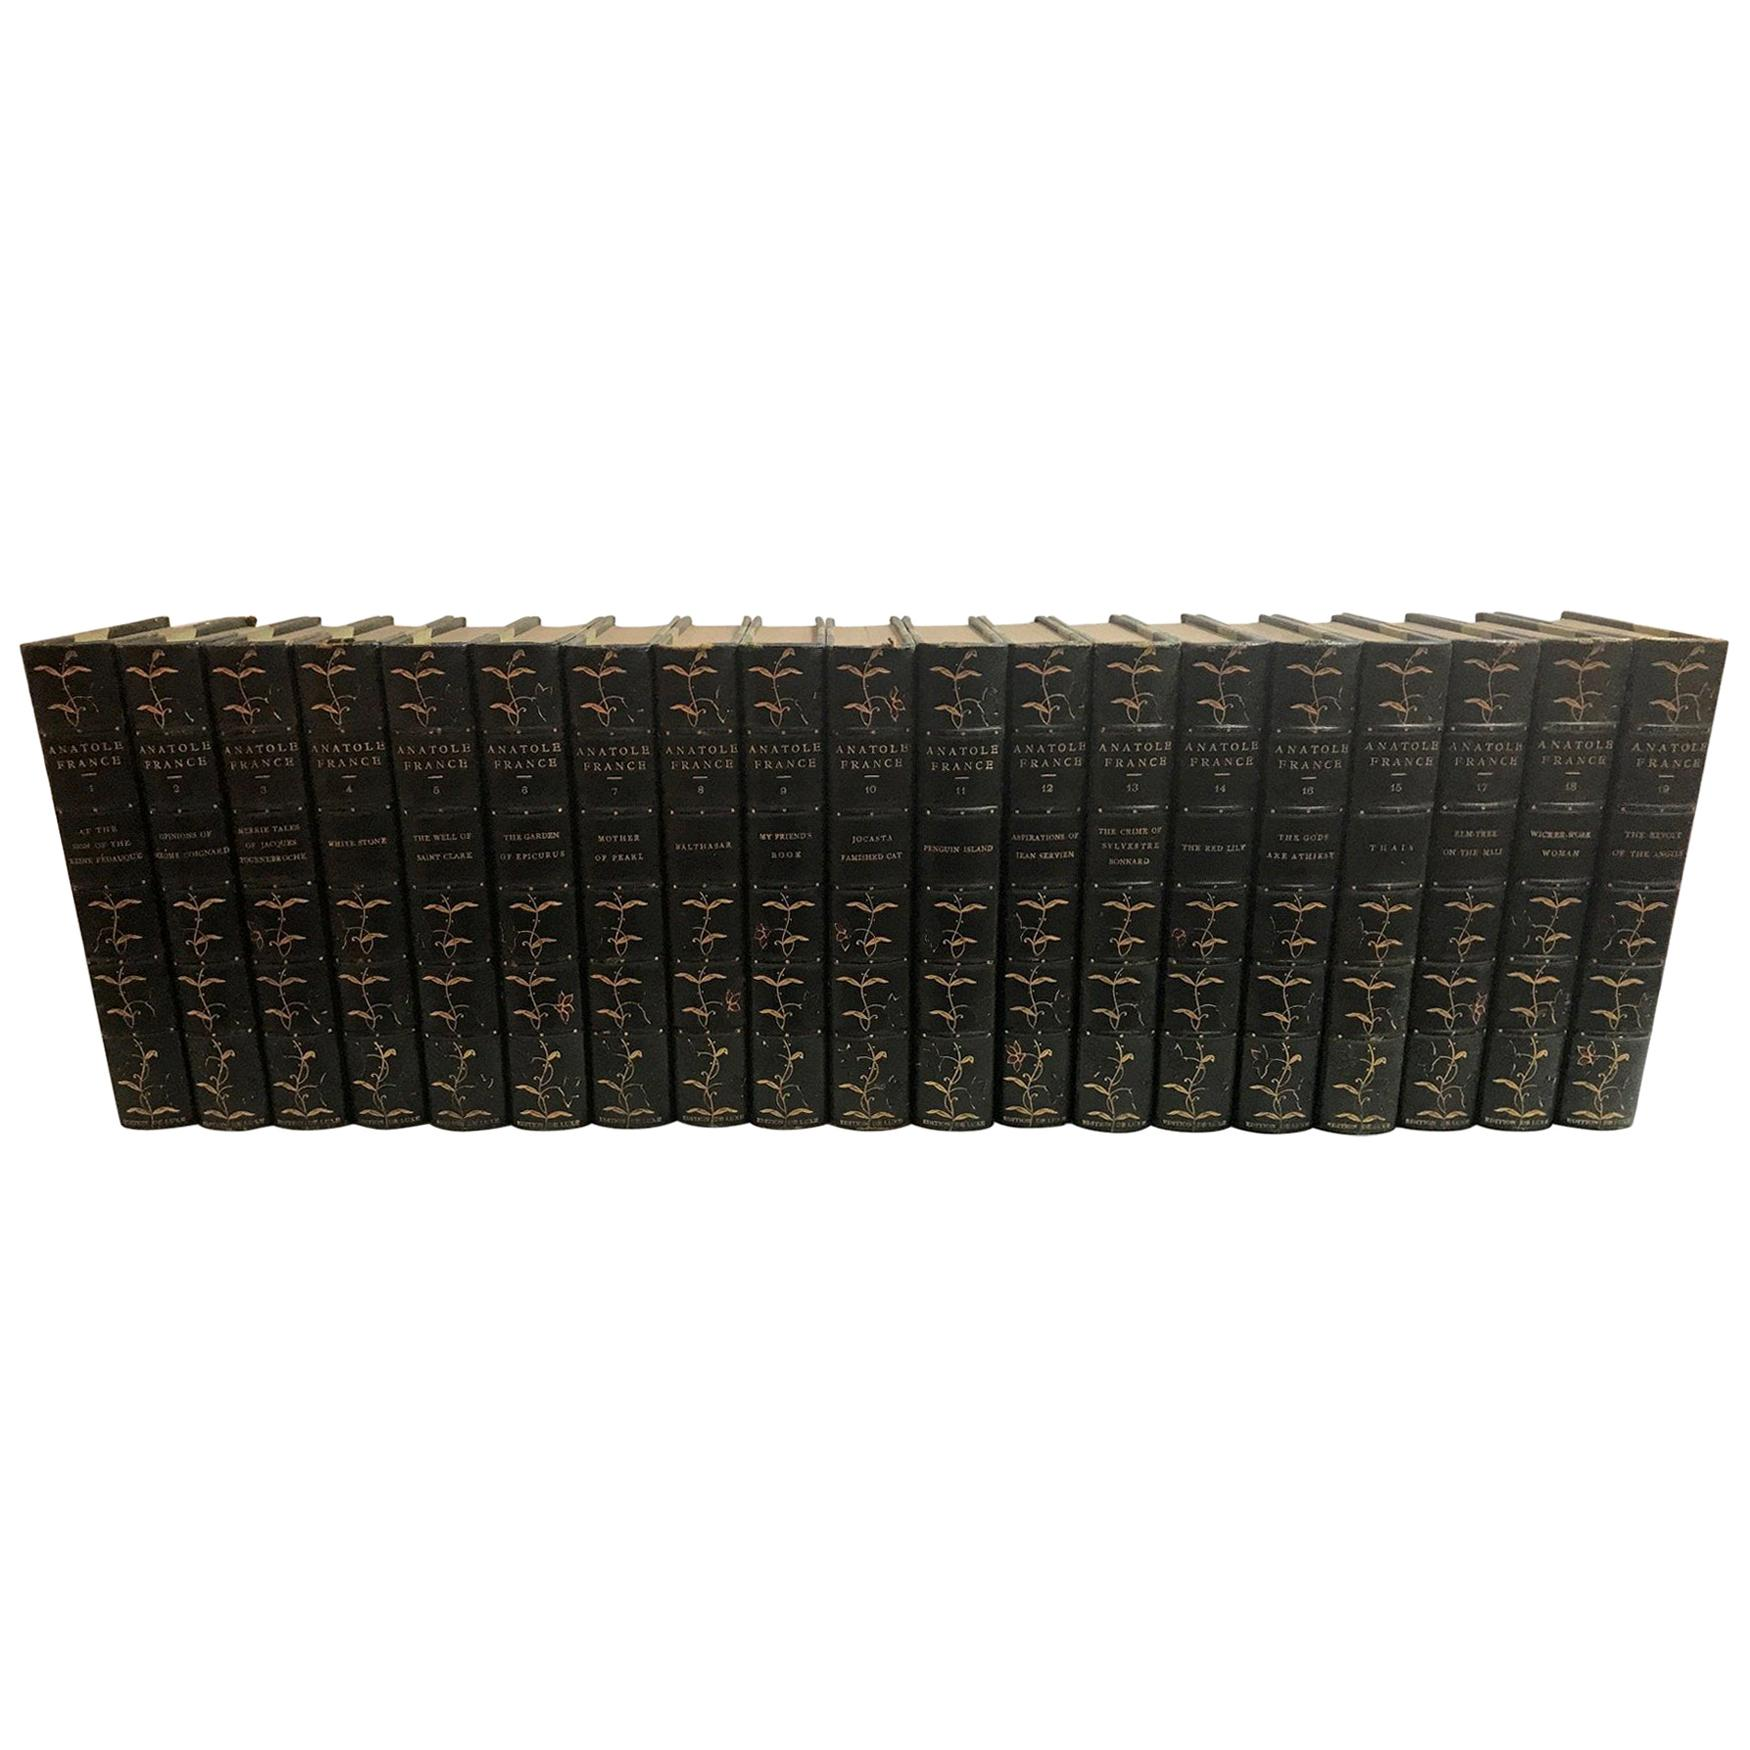 Complete Set of 19 Volumes of Novels and Stories of Anatole, France